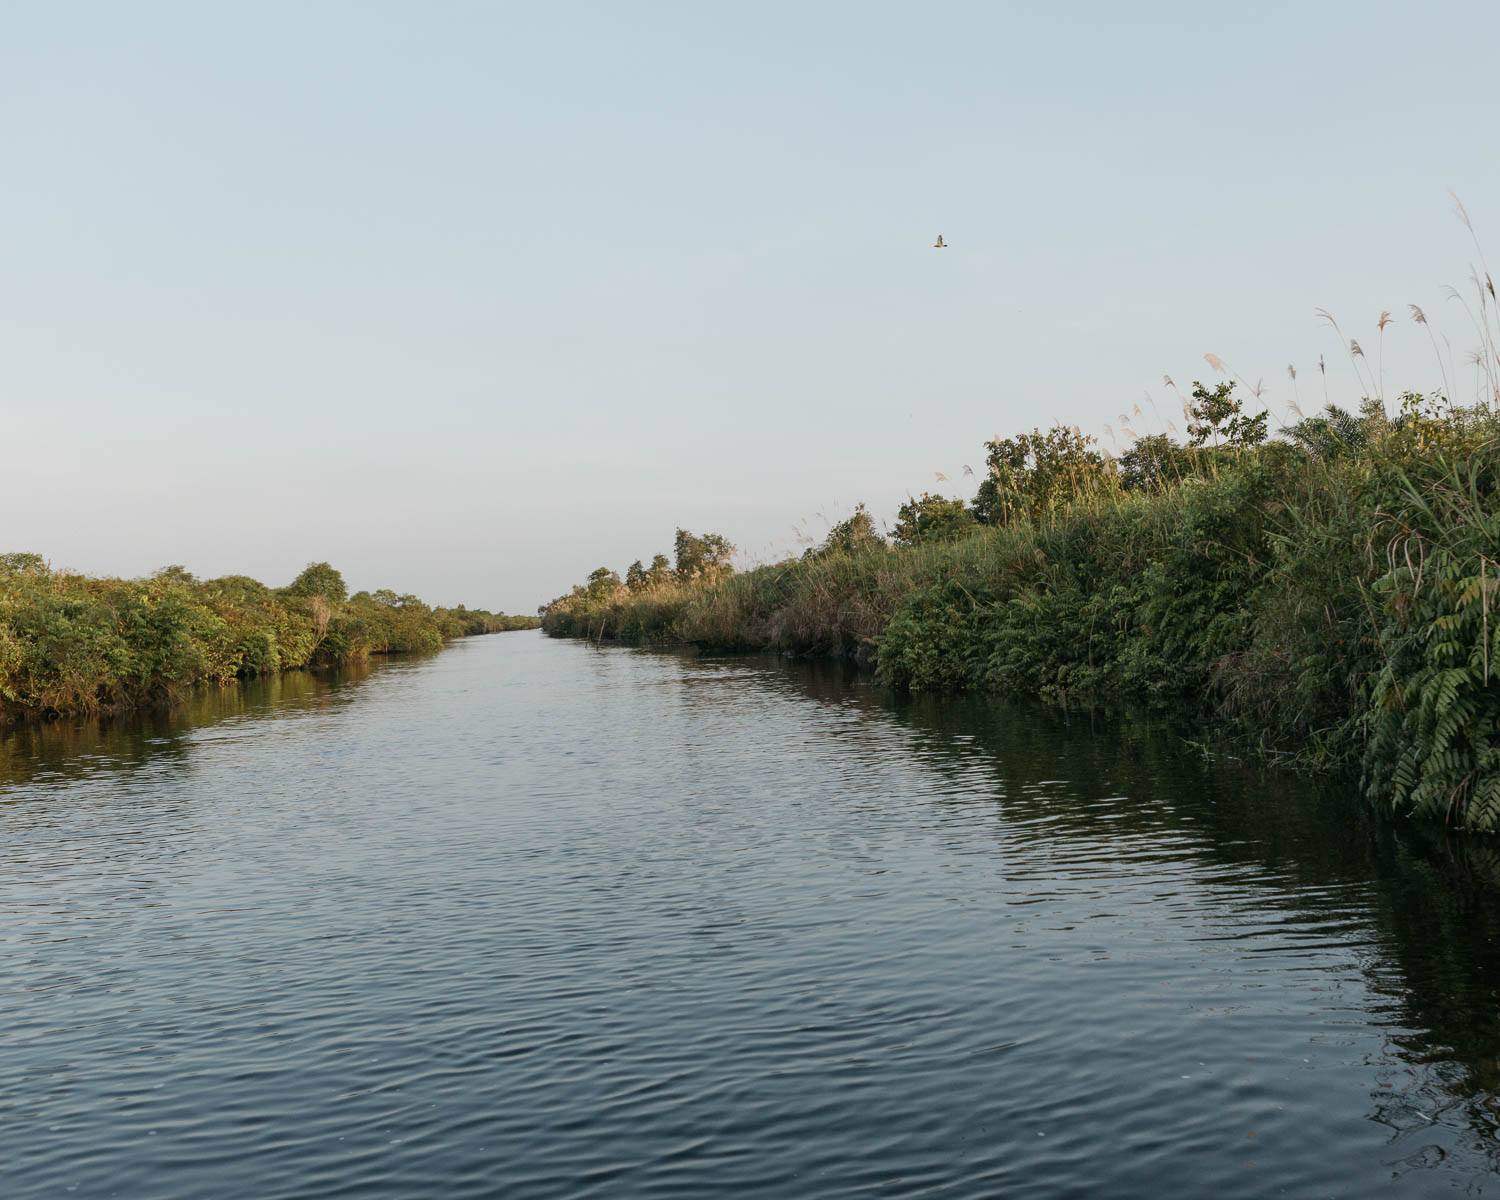 The canal that connects Mentaya and Katingan River. The land of PT Rimba Makmur Utama located between these two rivers.